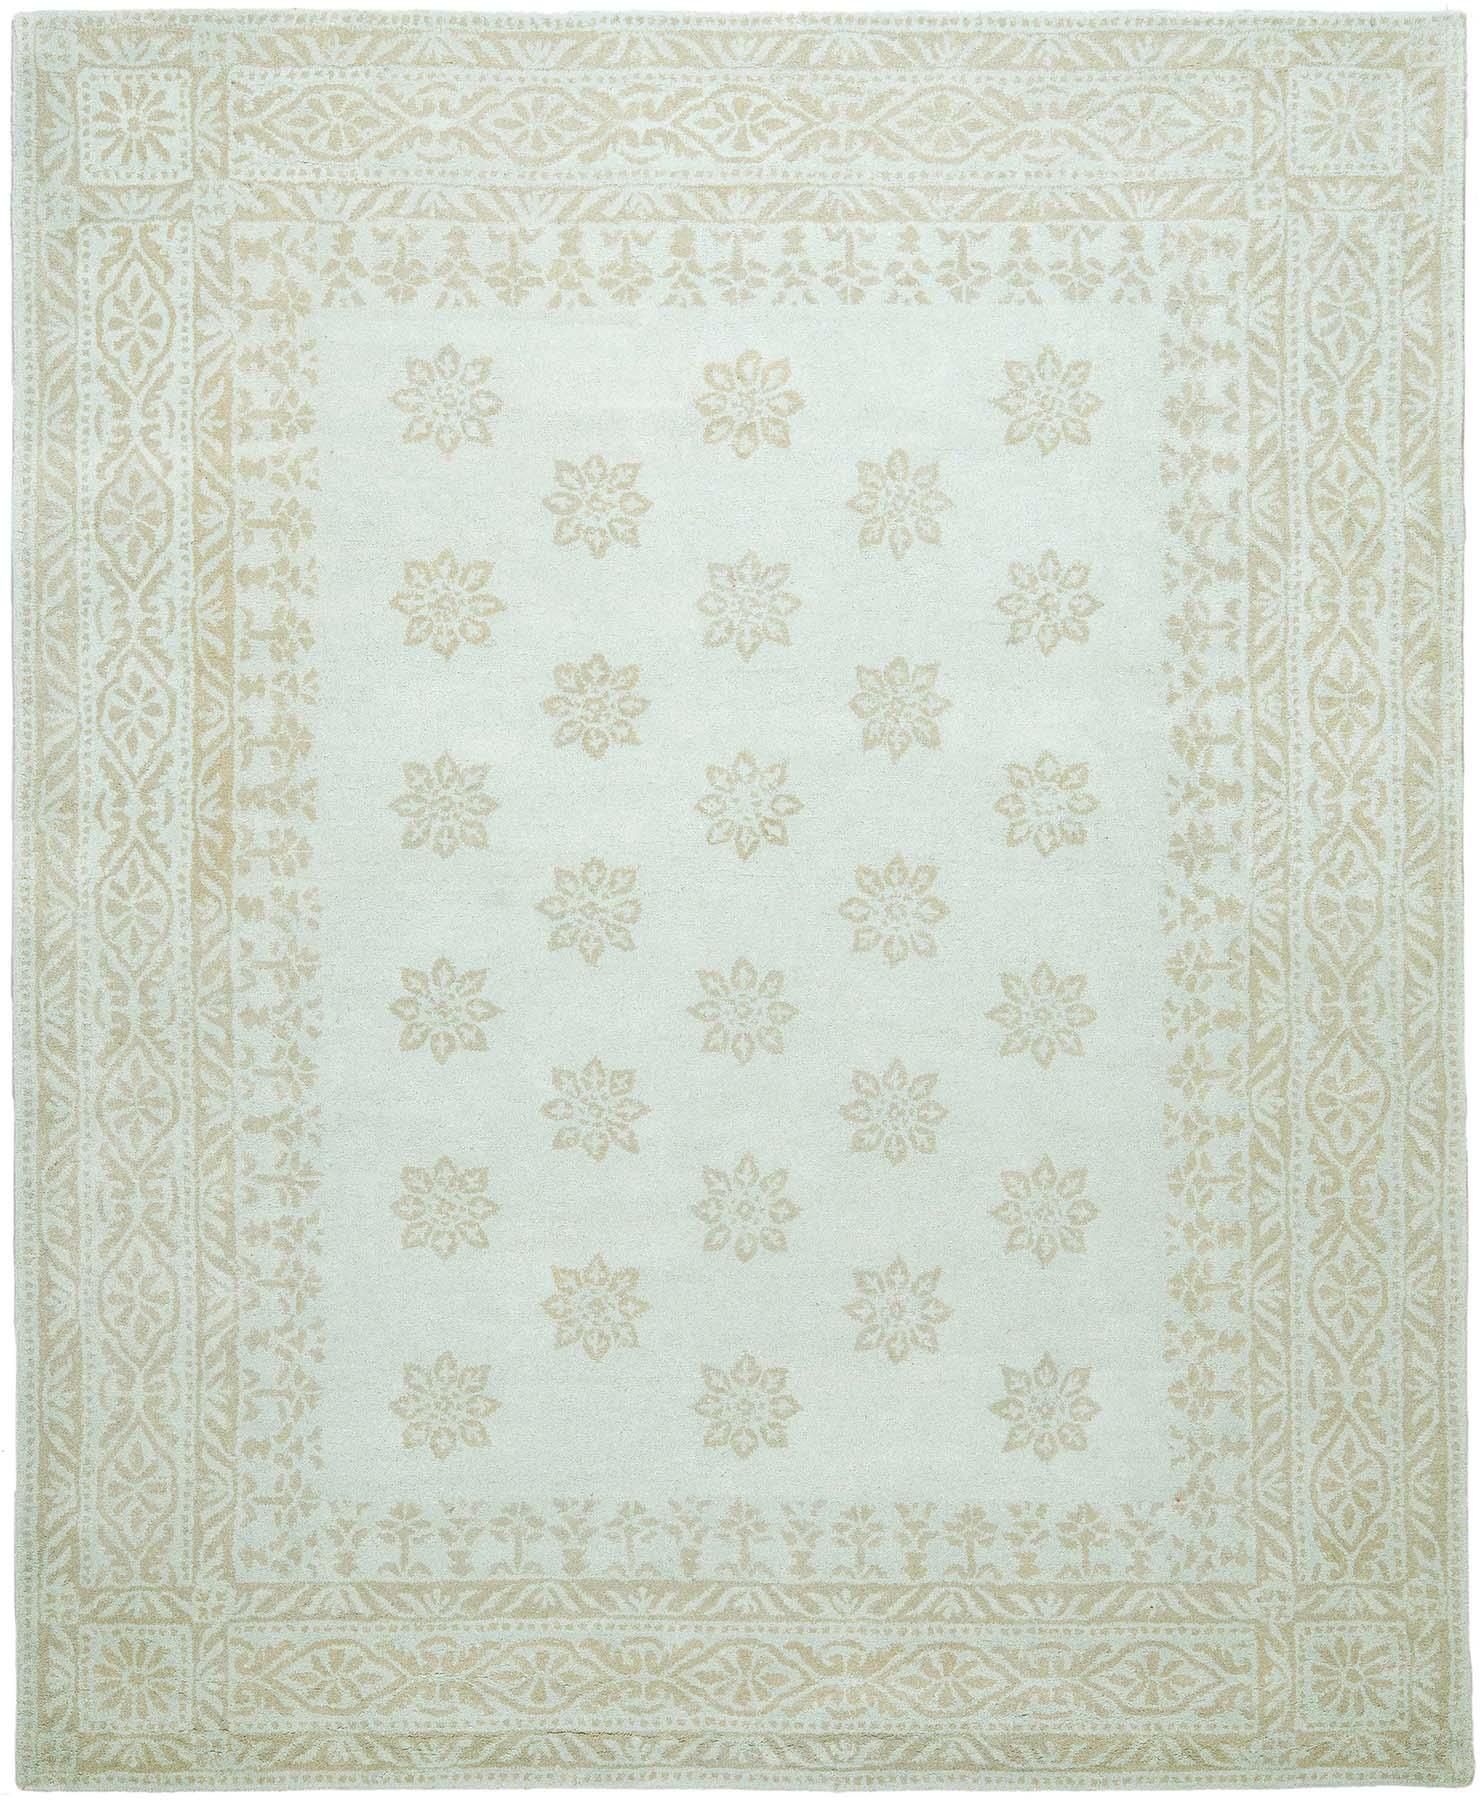 Rug Msr4538a Gracious Garden Martha Stewart Area Rugs By